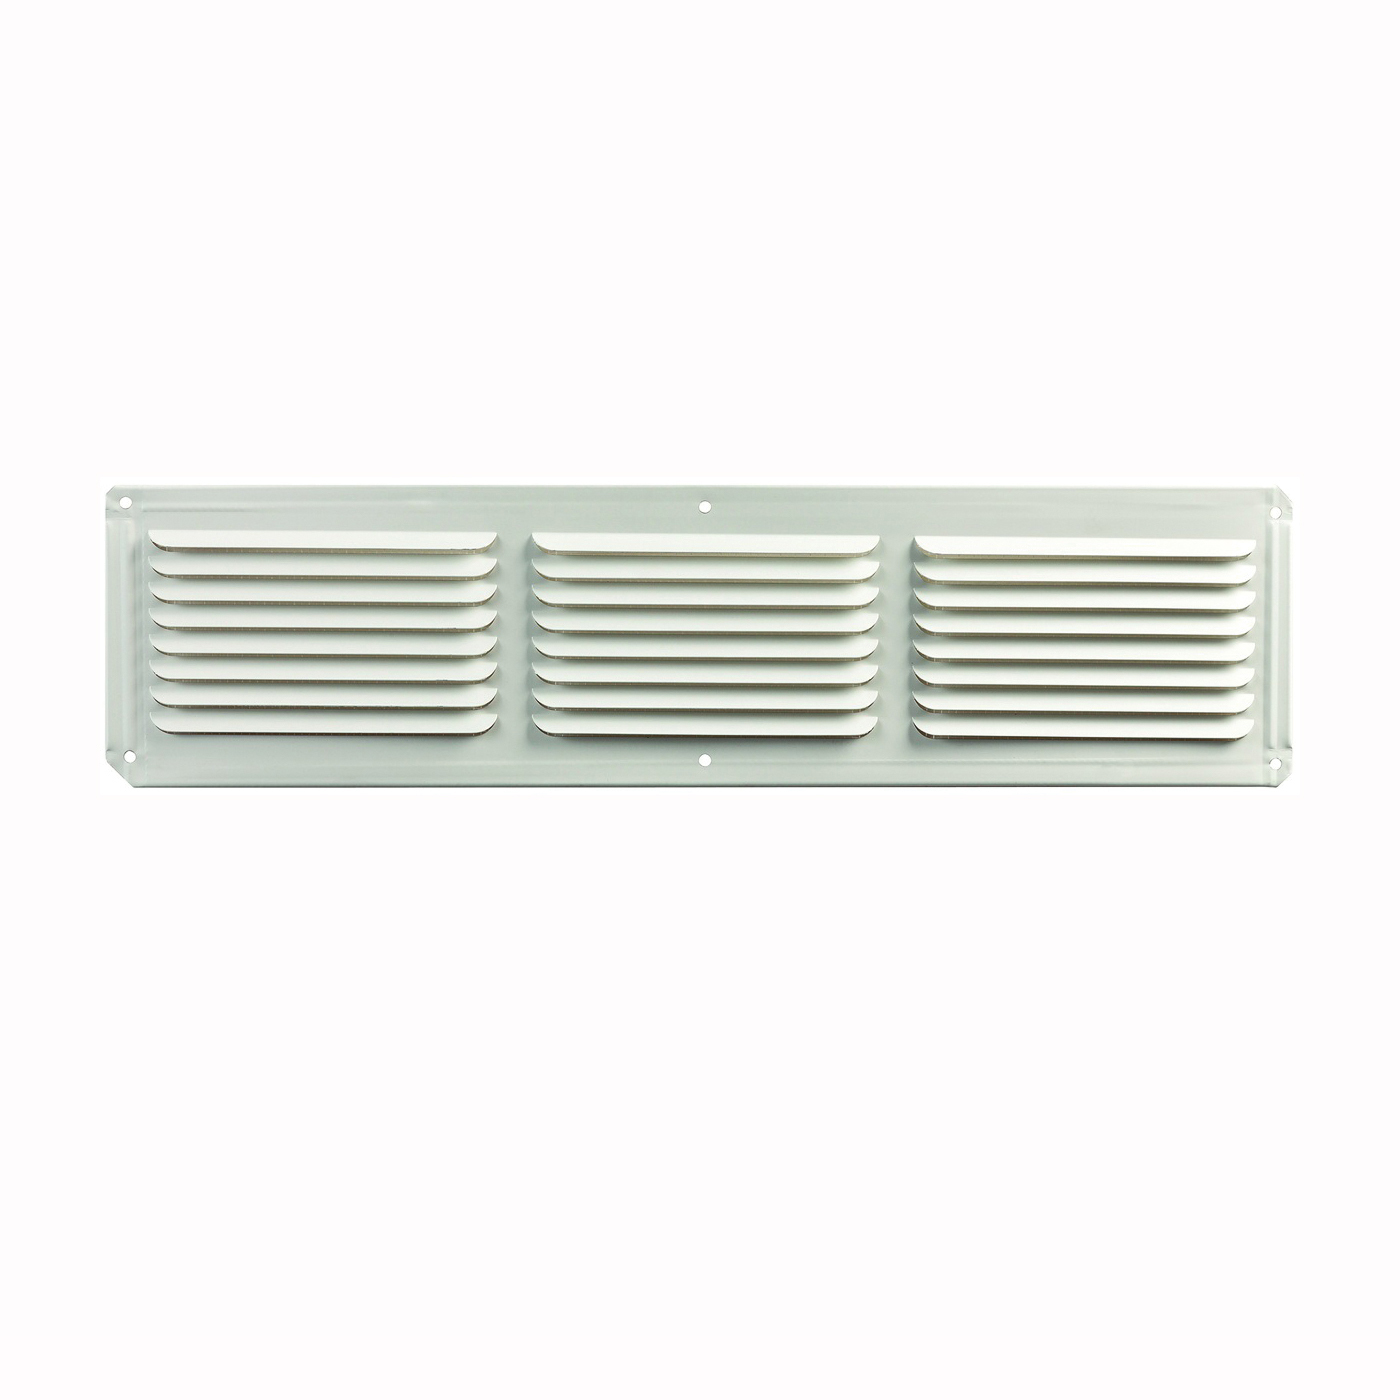 Picture of Master Flow EAC16X4W Undereave Vent, 4 in L, 16 in W, 26 sq-ft Net Free Ventilating Area, Aluminum, White